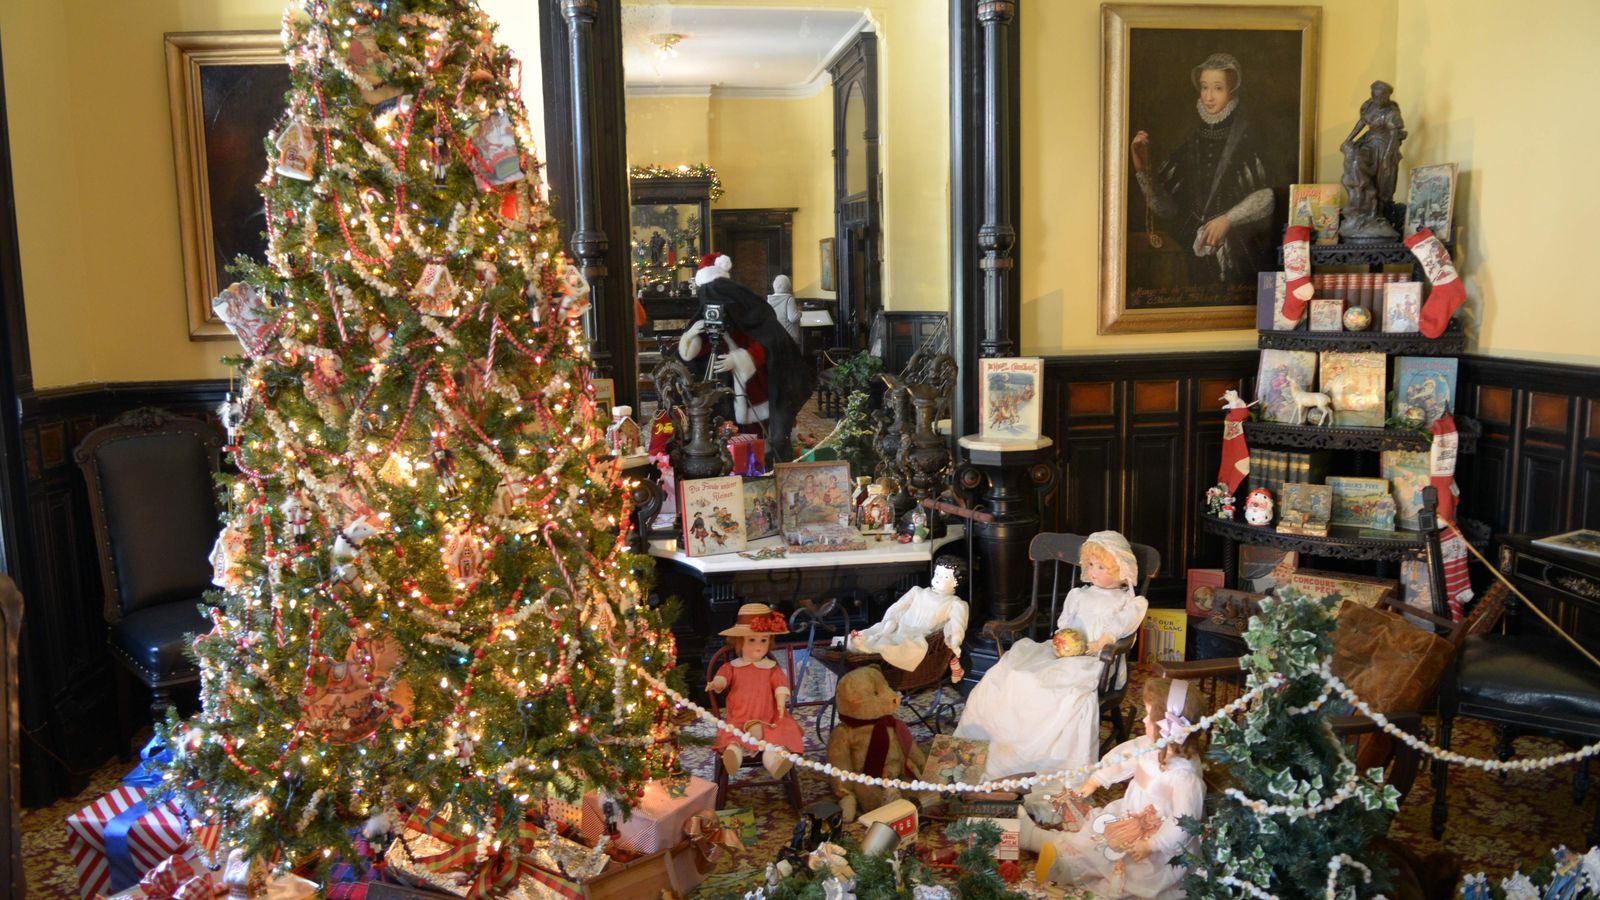 Plant Museum Welcomes Back Victorian Christmas Stroll